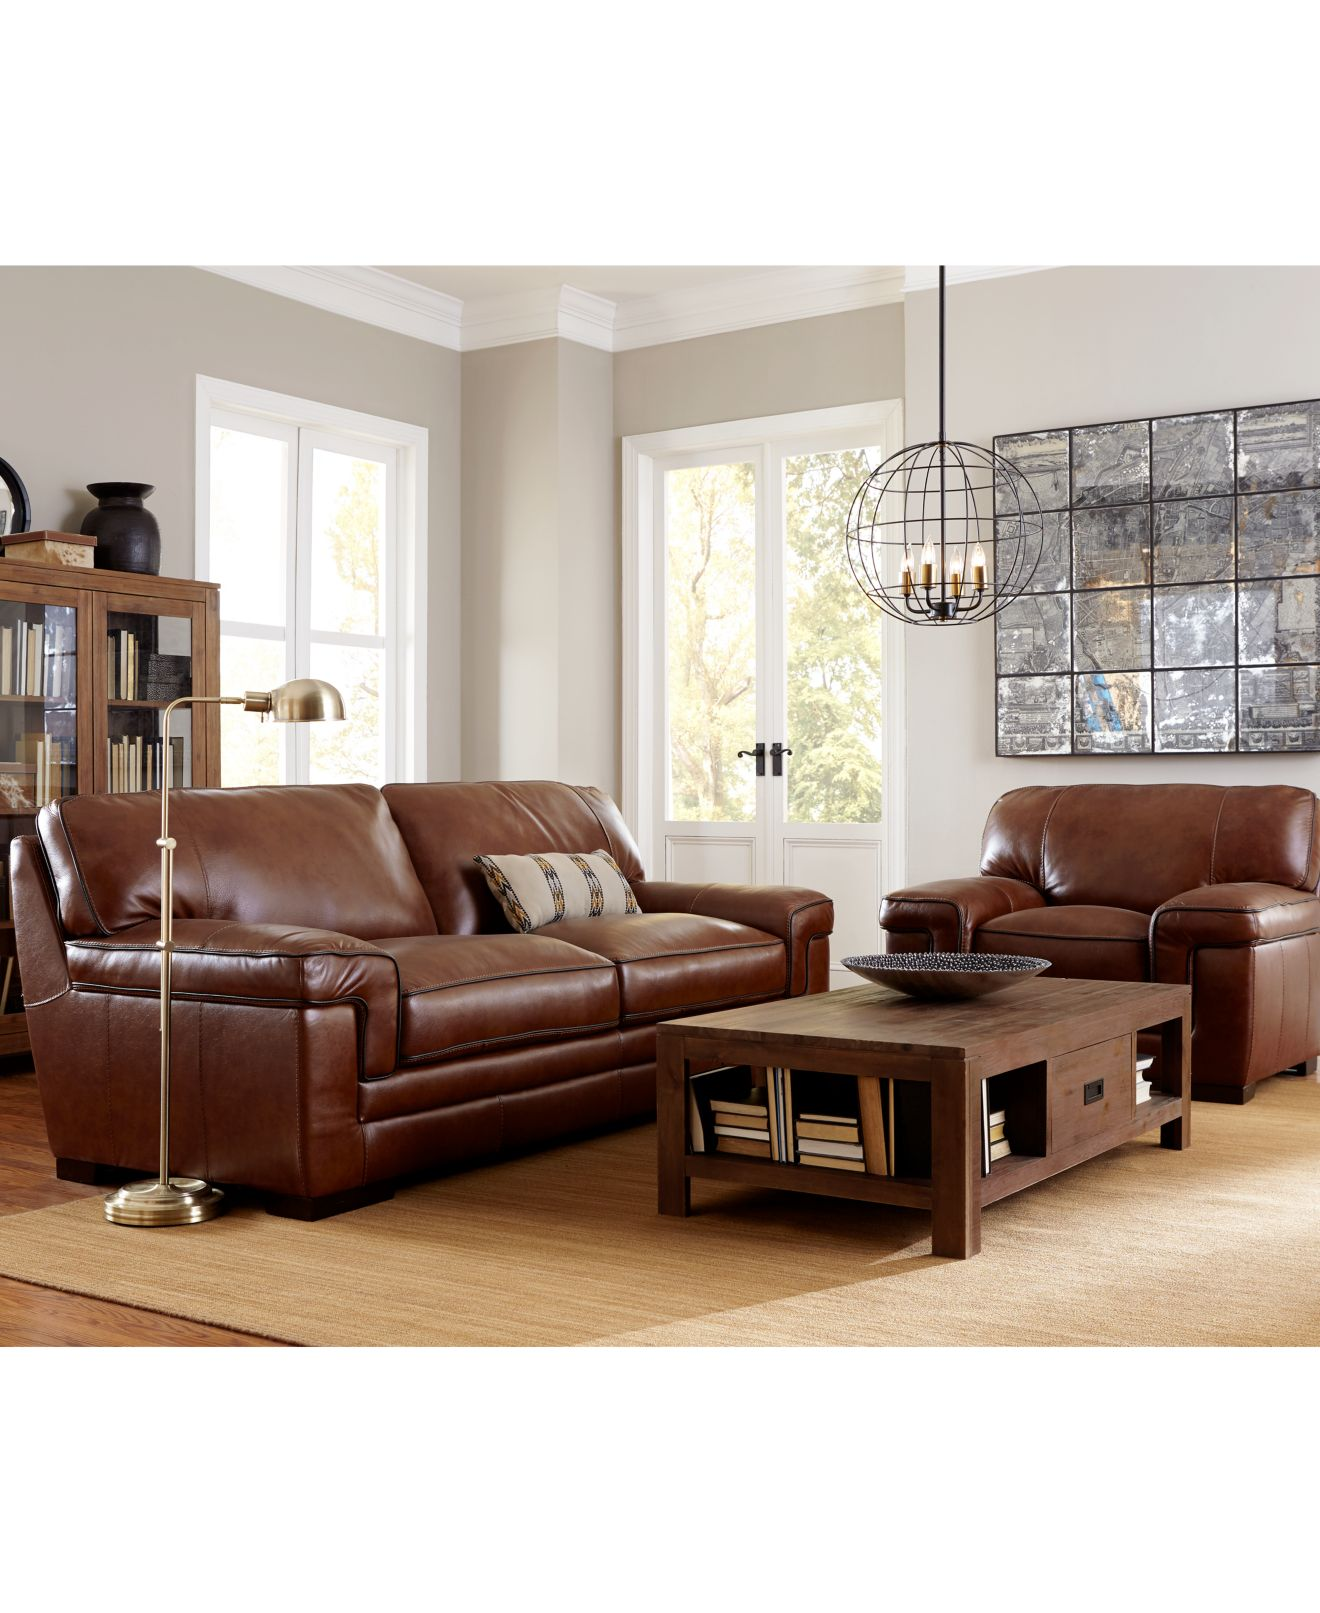 Living Room Collections Living Room Furniture Sets Macys